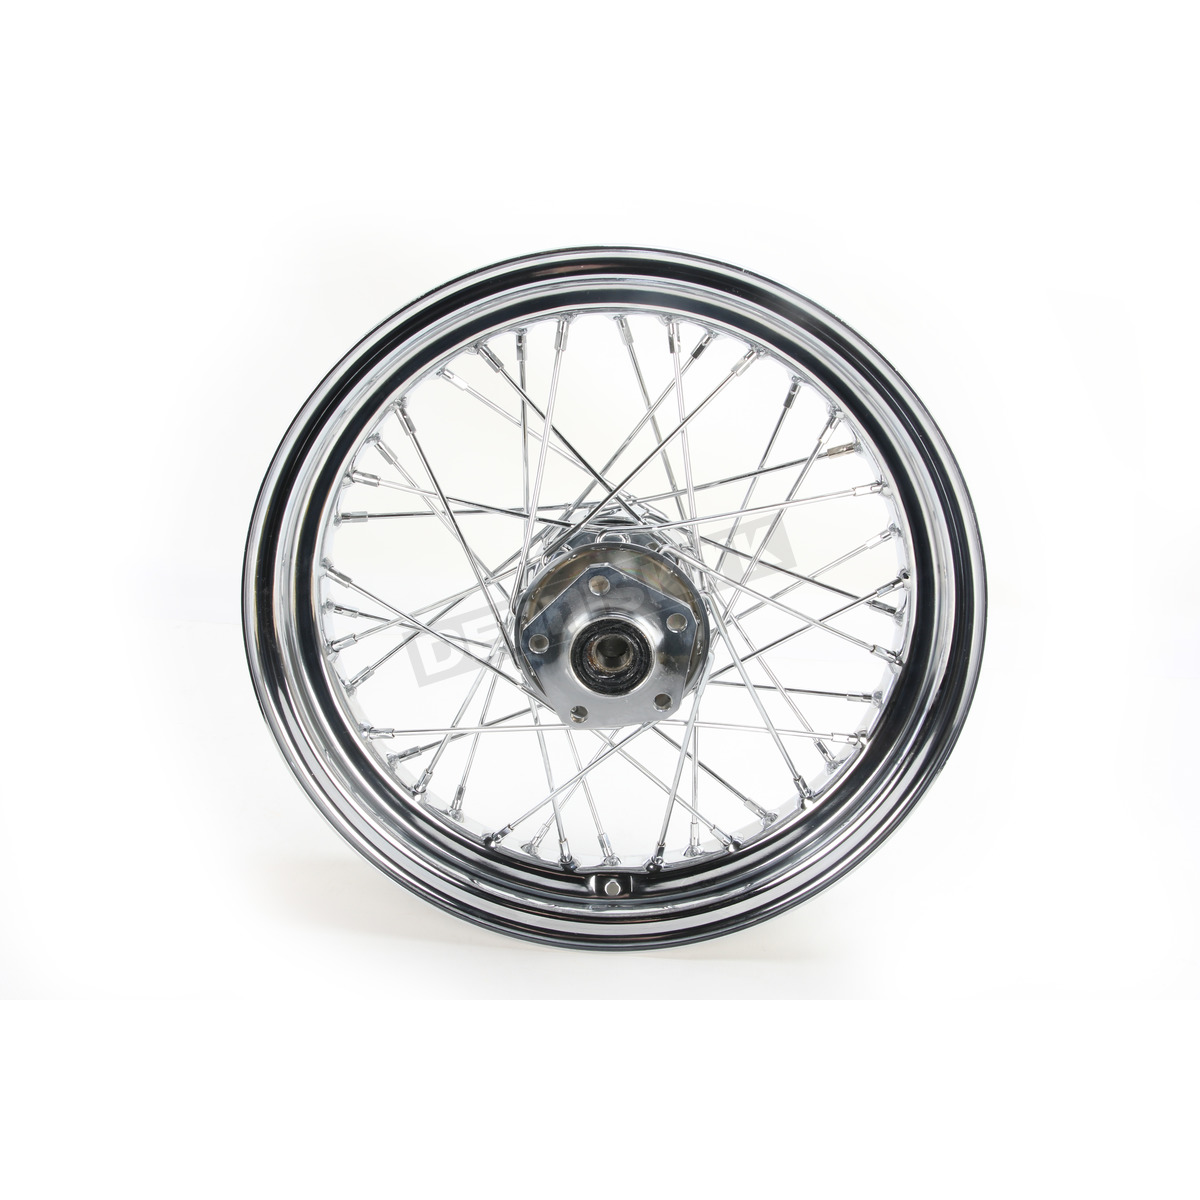 v factor chrome 16x3 00 40 spoke rear wheel 51645 harley davidson Bicycle Rear Hub Diagram chrome 16x3 00 40 spoke rear wheel 51645